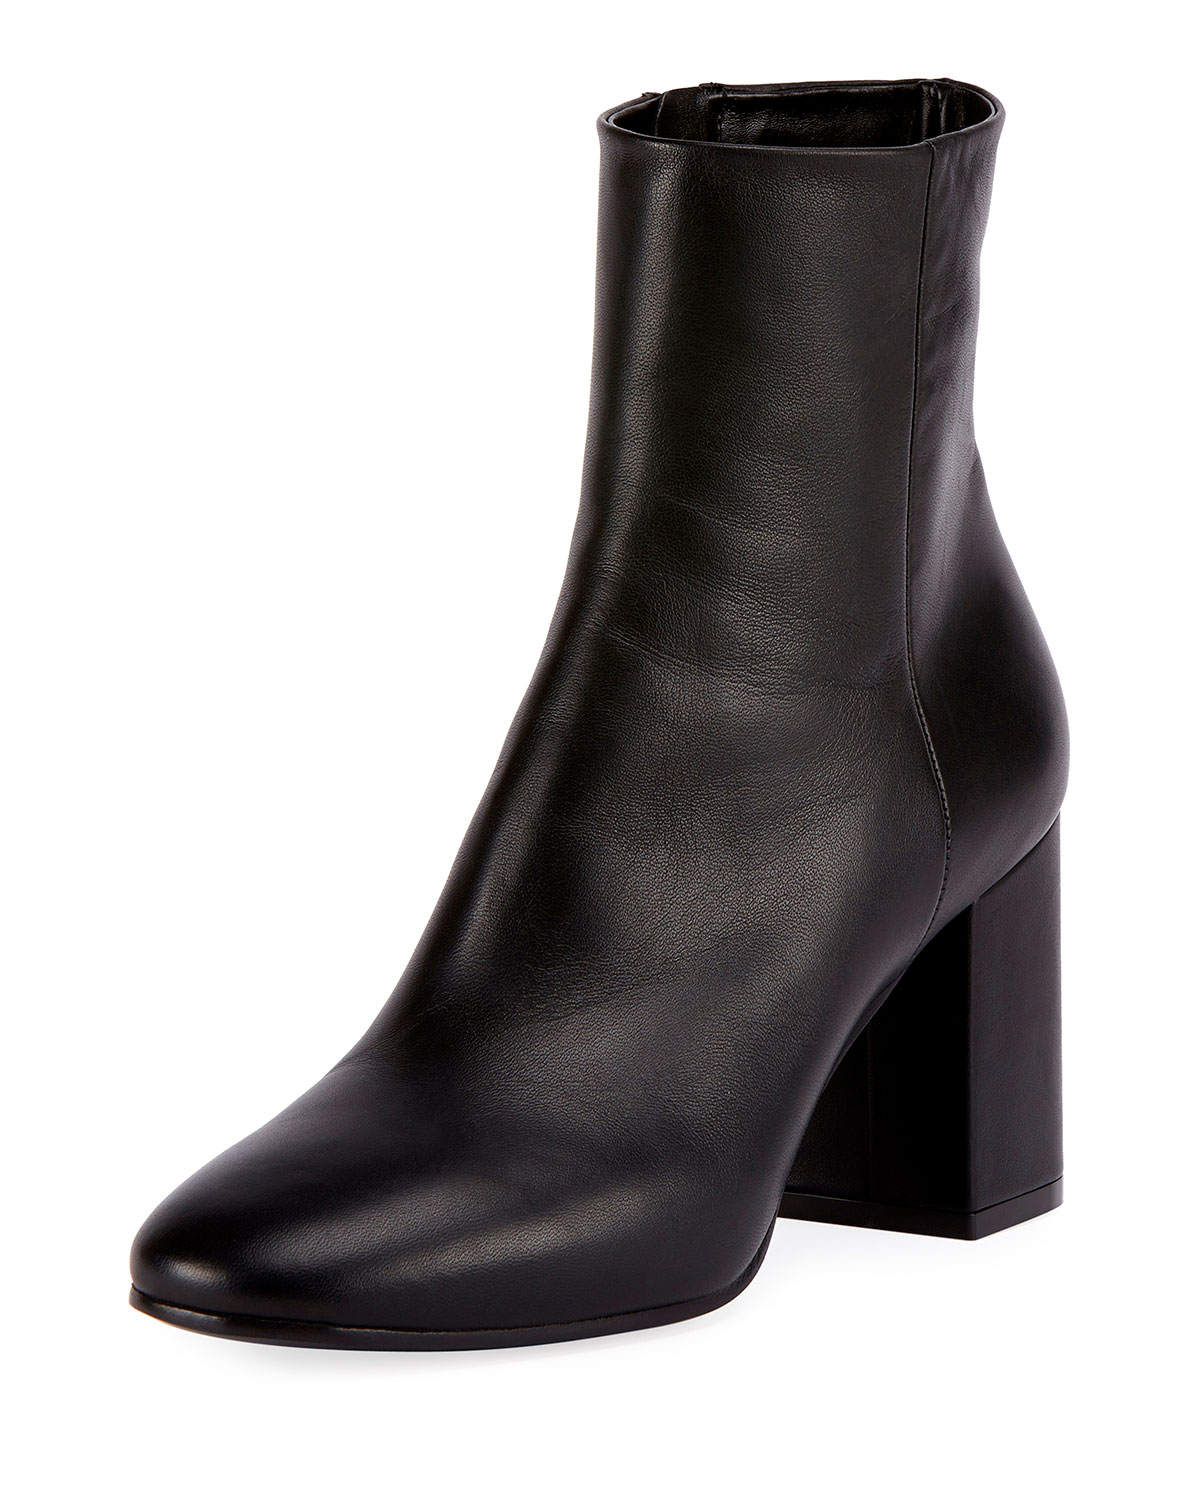 Prada Black Suede Crystal Ankle Boots shop offer cheap online sale with mastercard 3C5NRZC